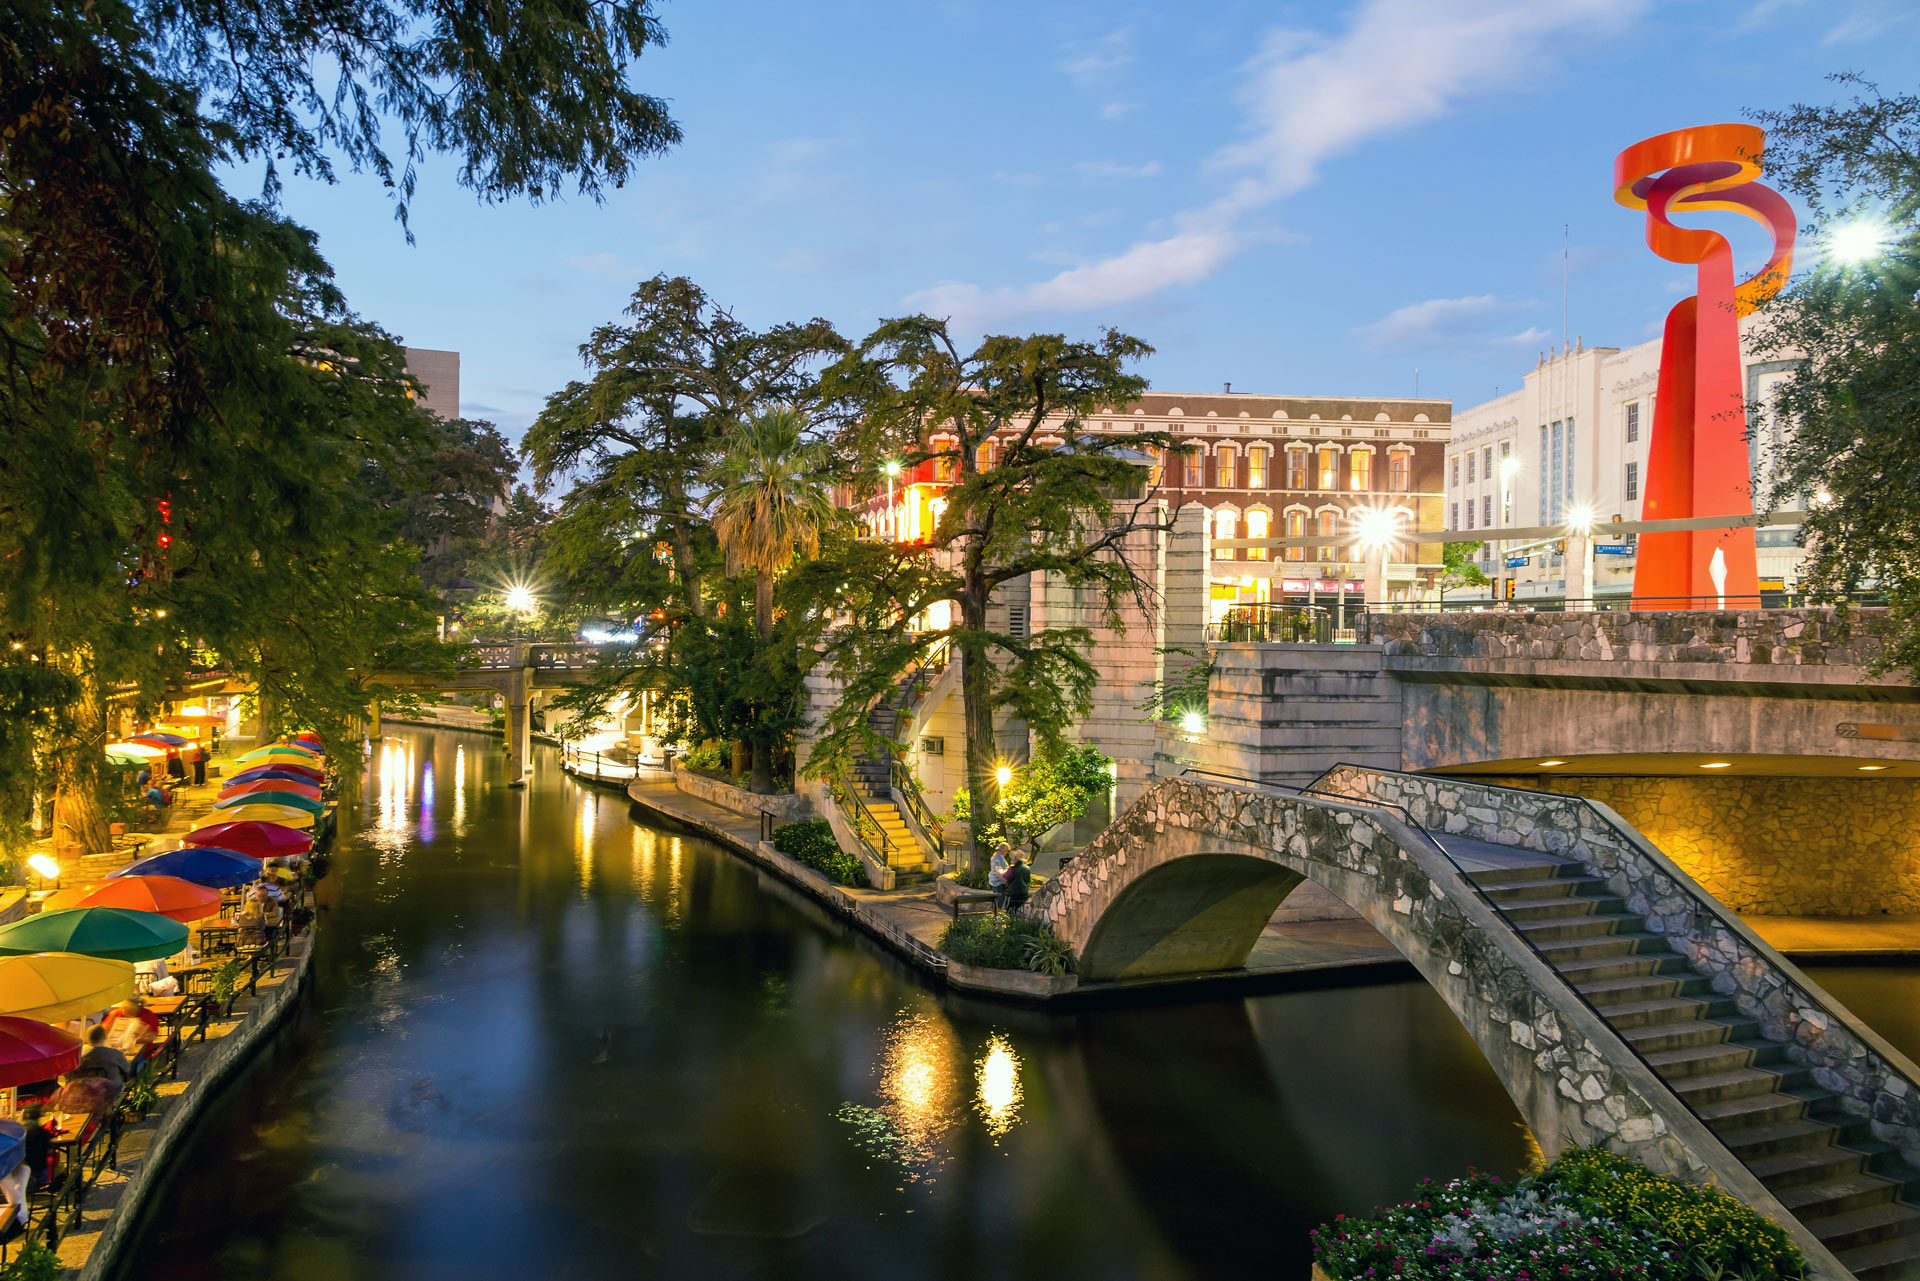 san antonio tricentennial 300 years old only getting better